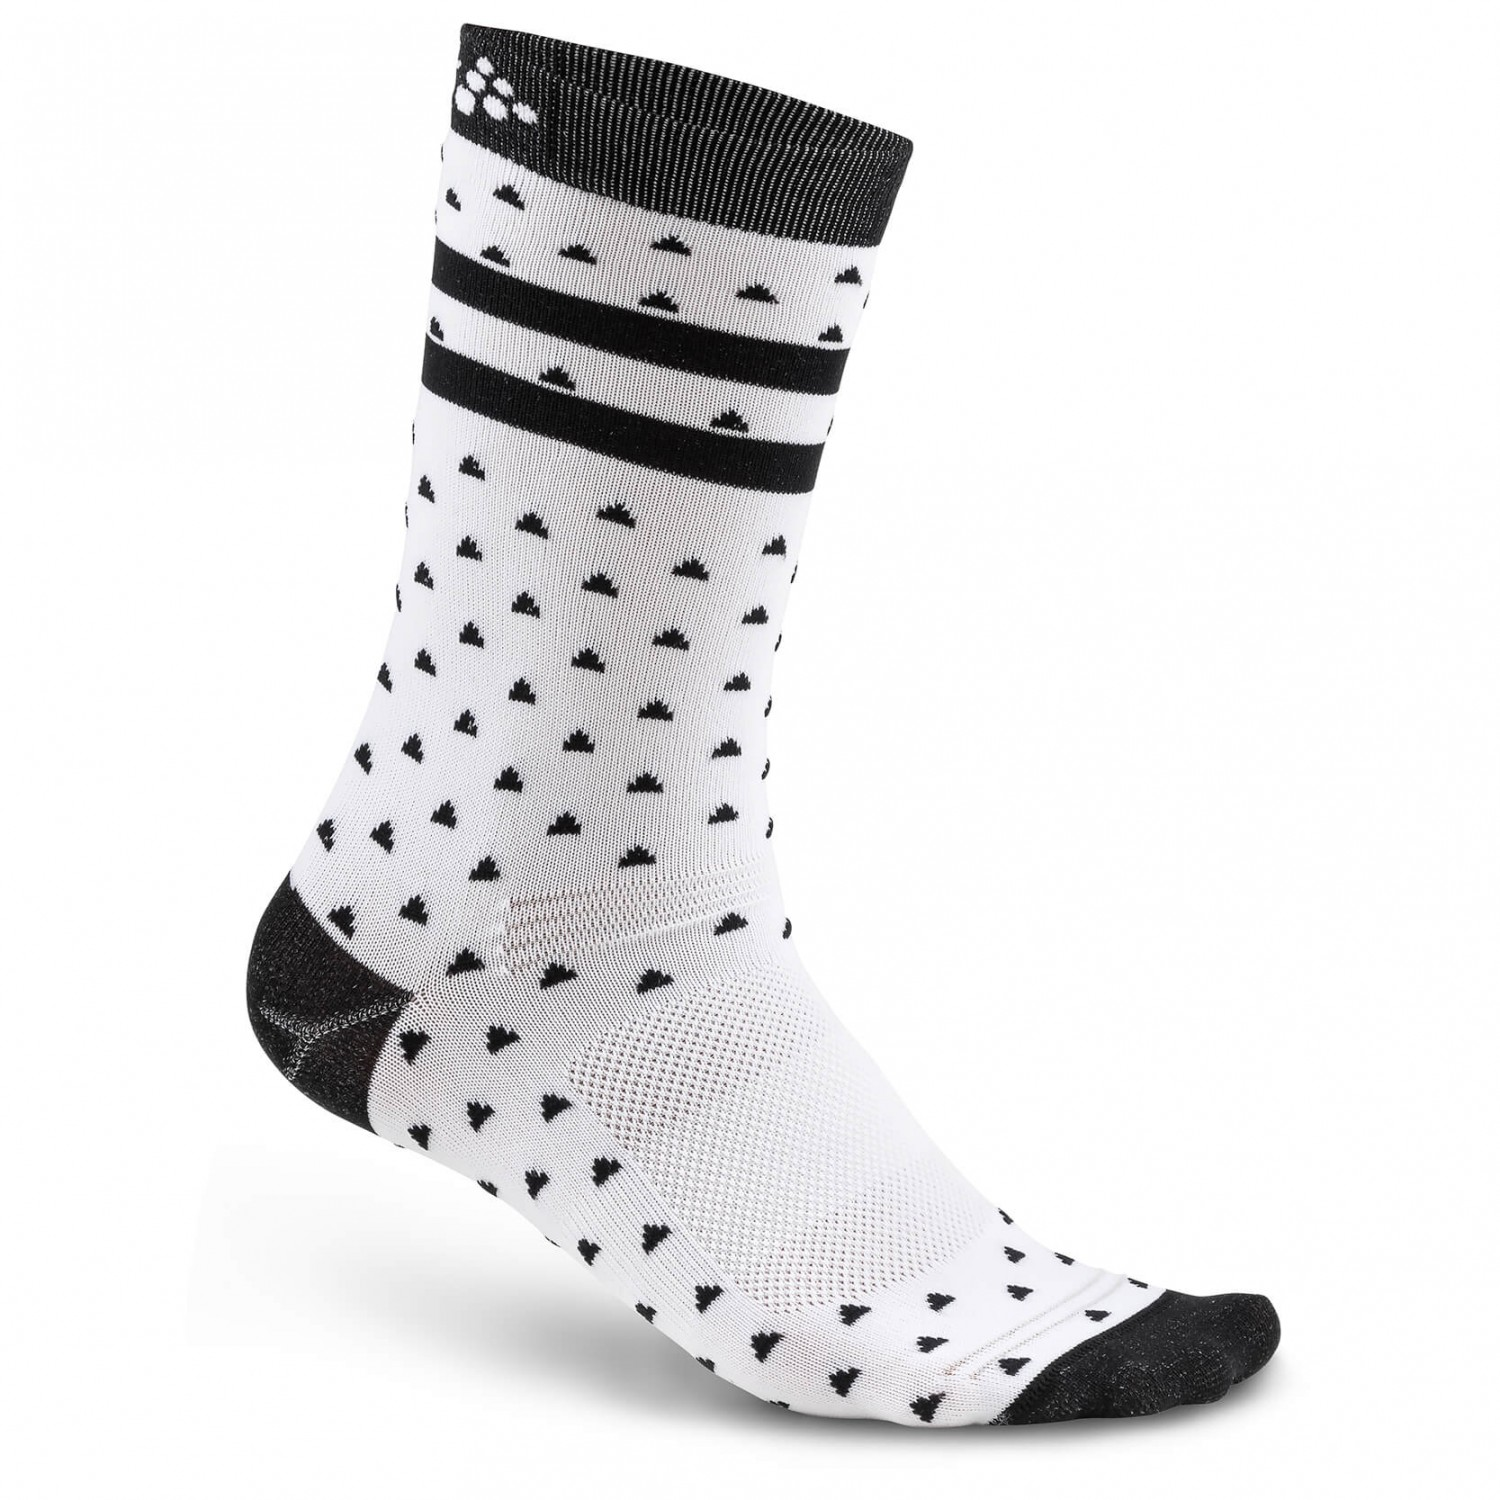 Craft - Pattern Sock - Radsocken White / Black